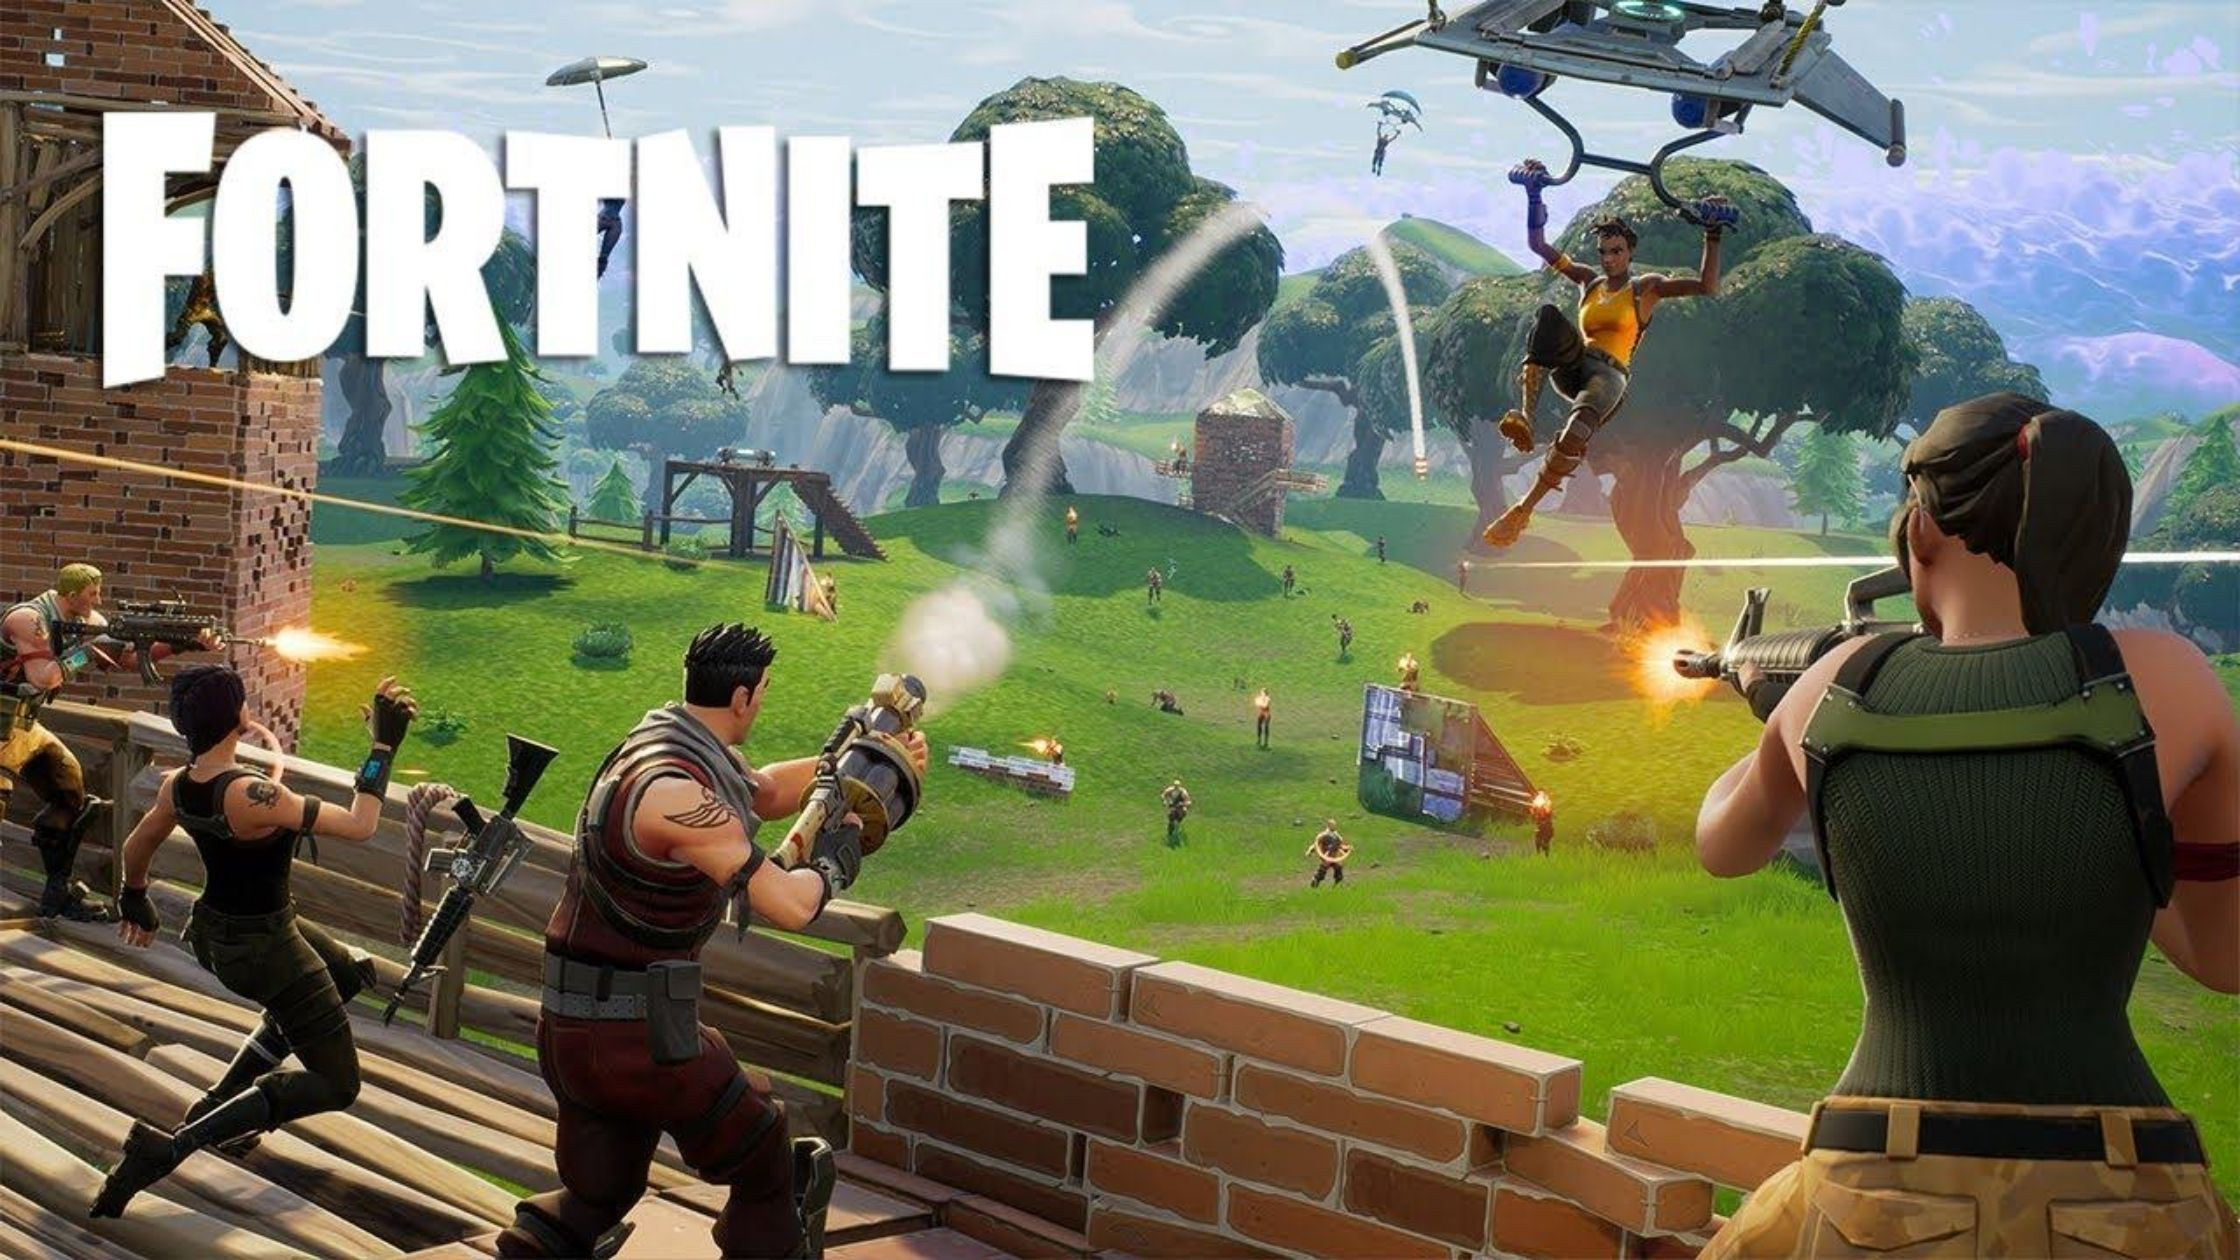 Fortnite' application expulsion undermines social lifesaver for youthful gamers.